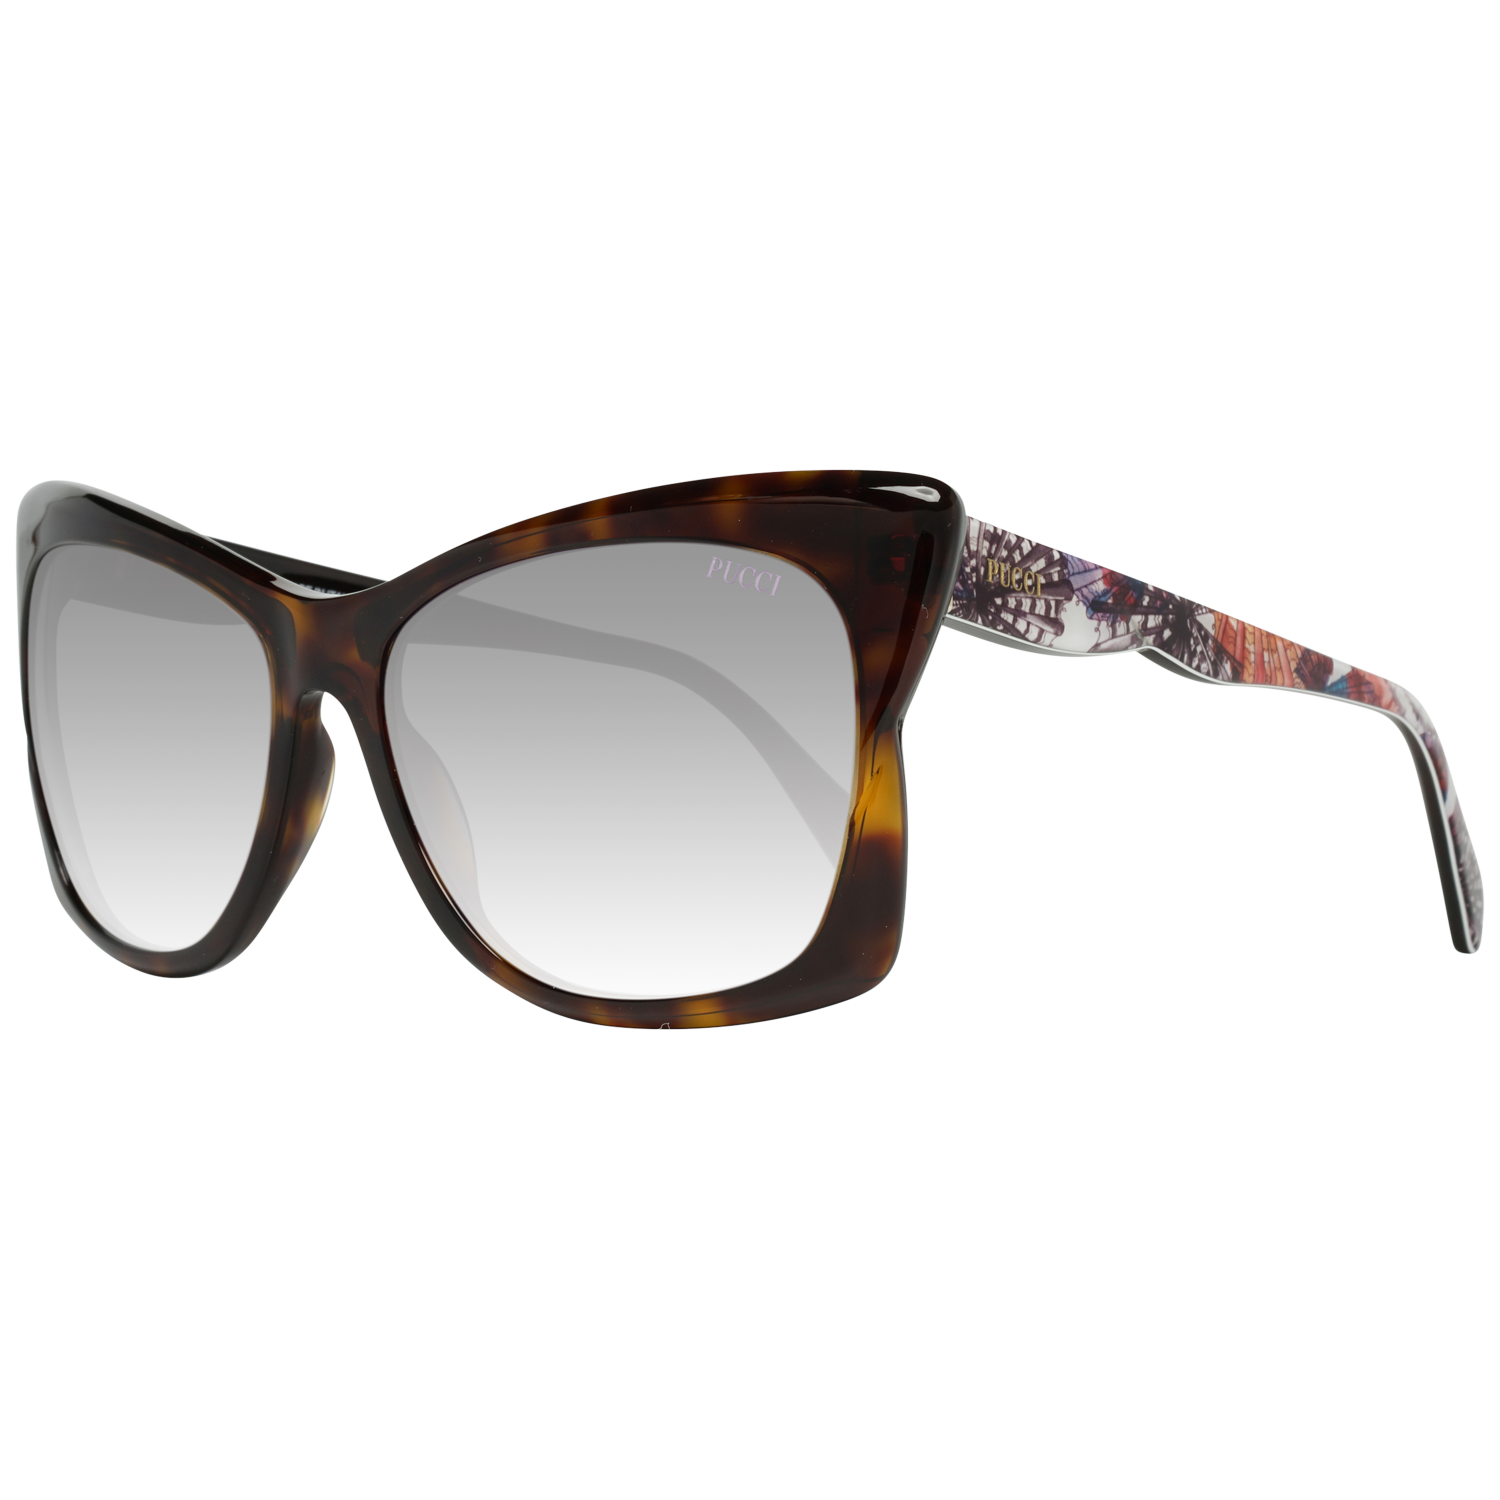 Emilio Pucci Sunglasses EP0050 52Z 59 Women Brown